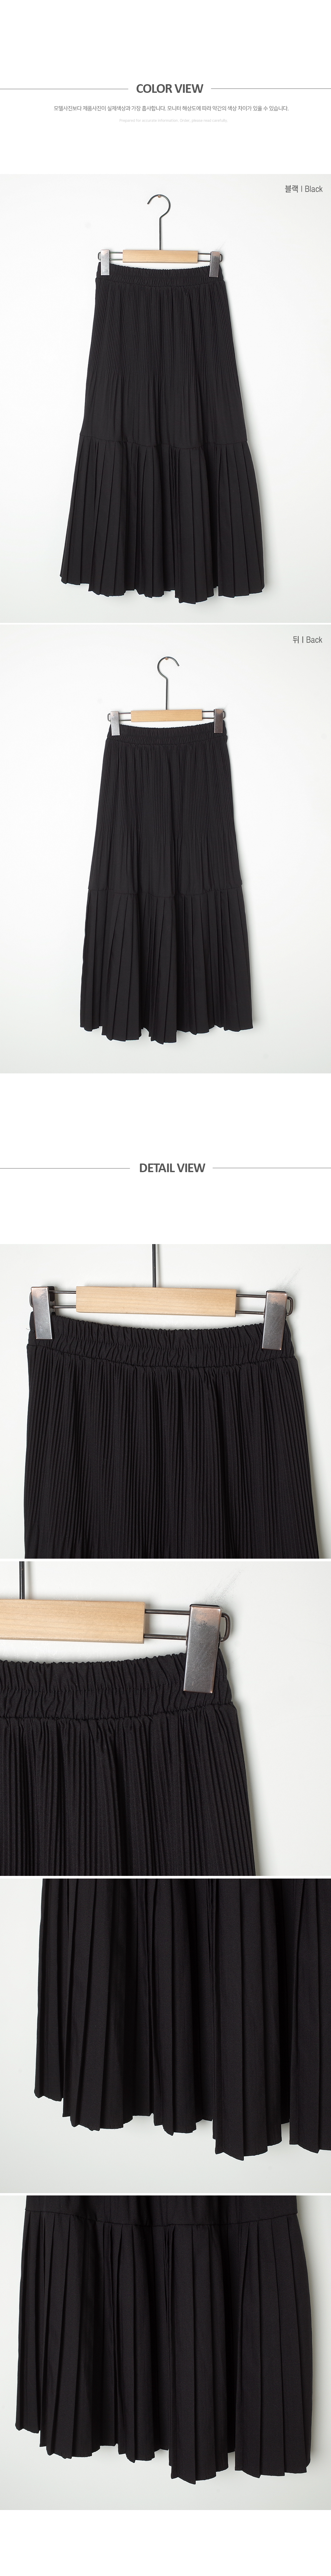 If you look at a skirt